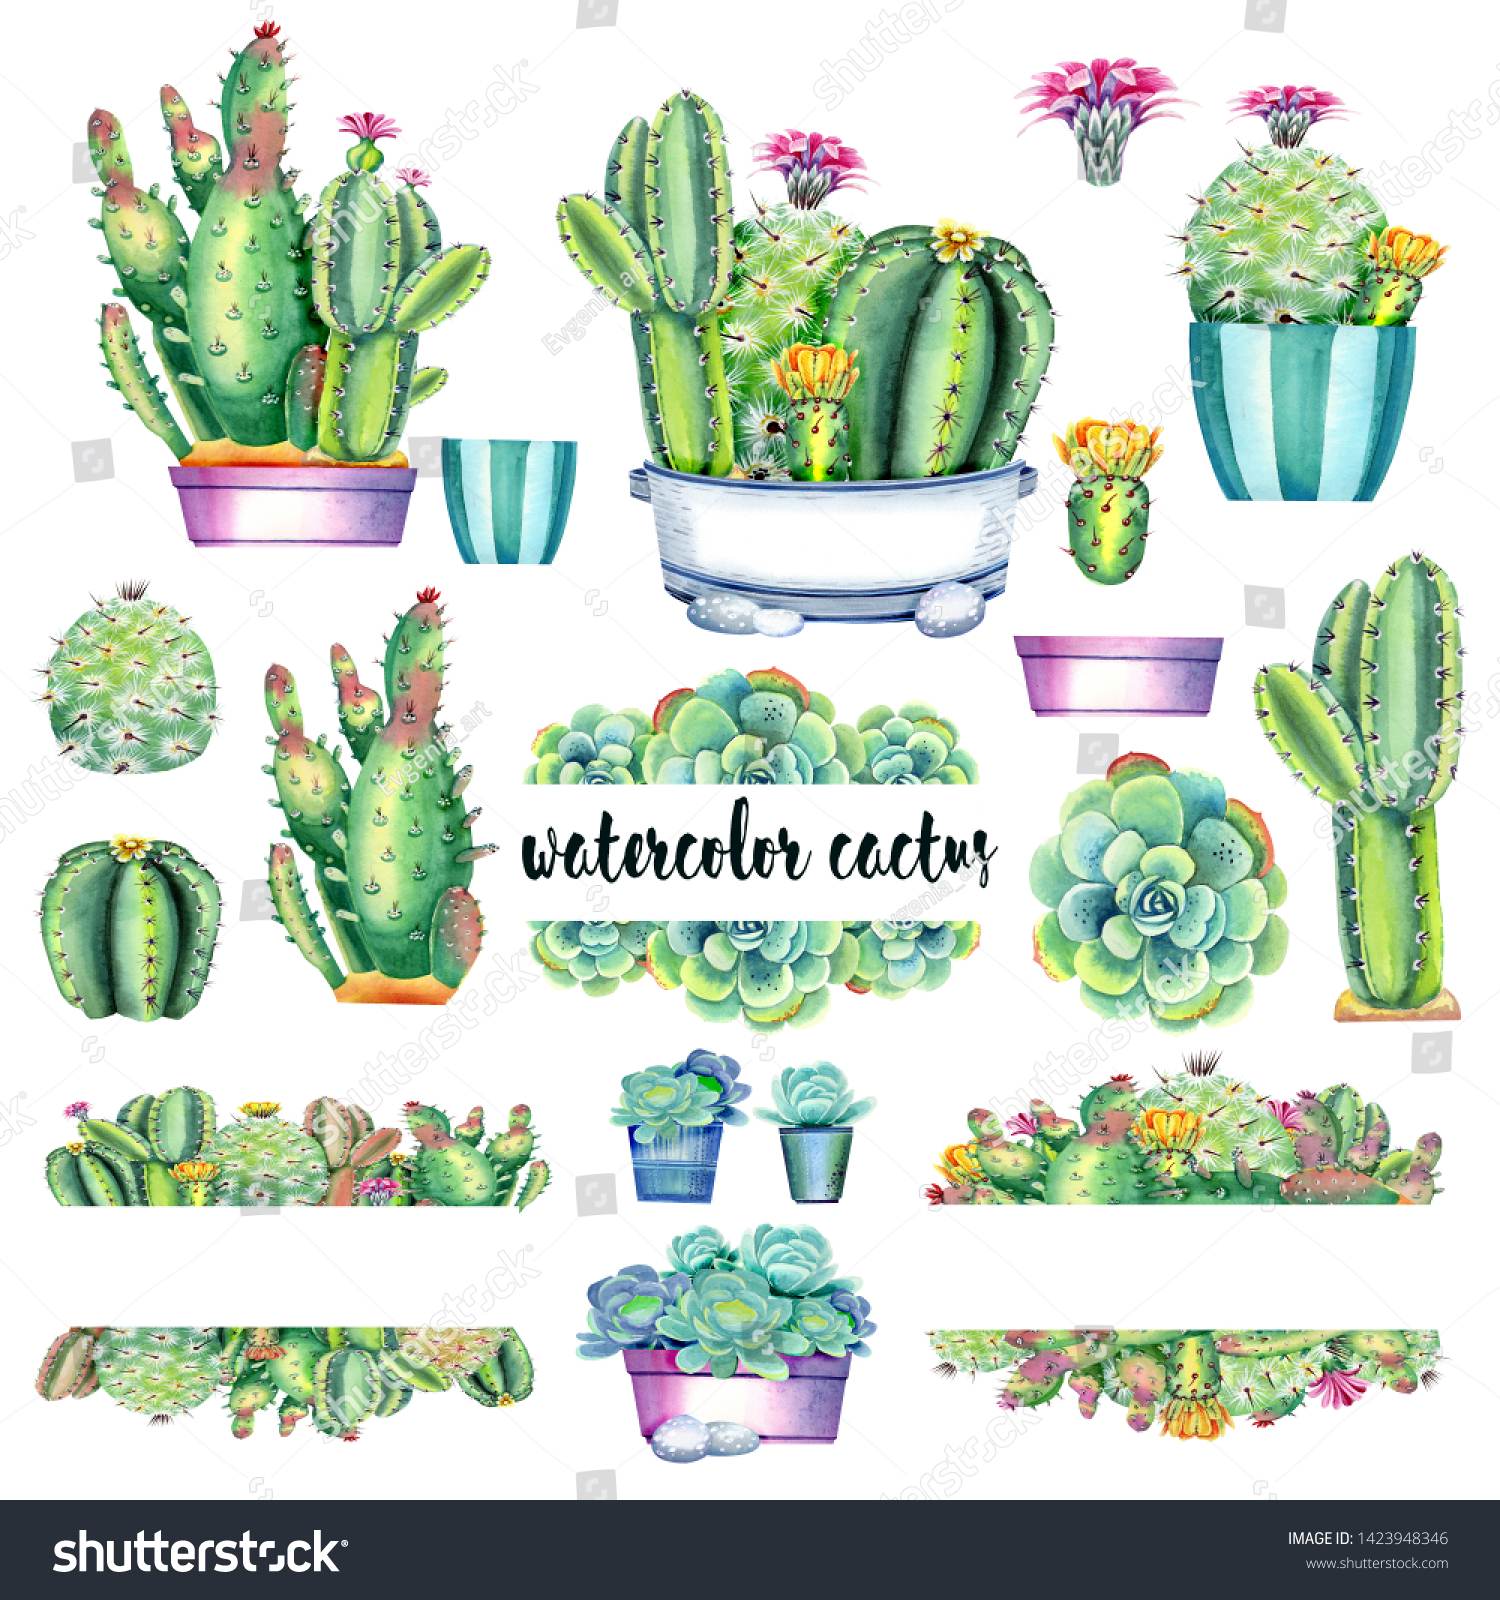 Clip Art Floral Frame Cactus Succulents Stock Illustration 1423948346